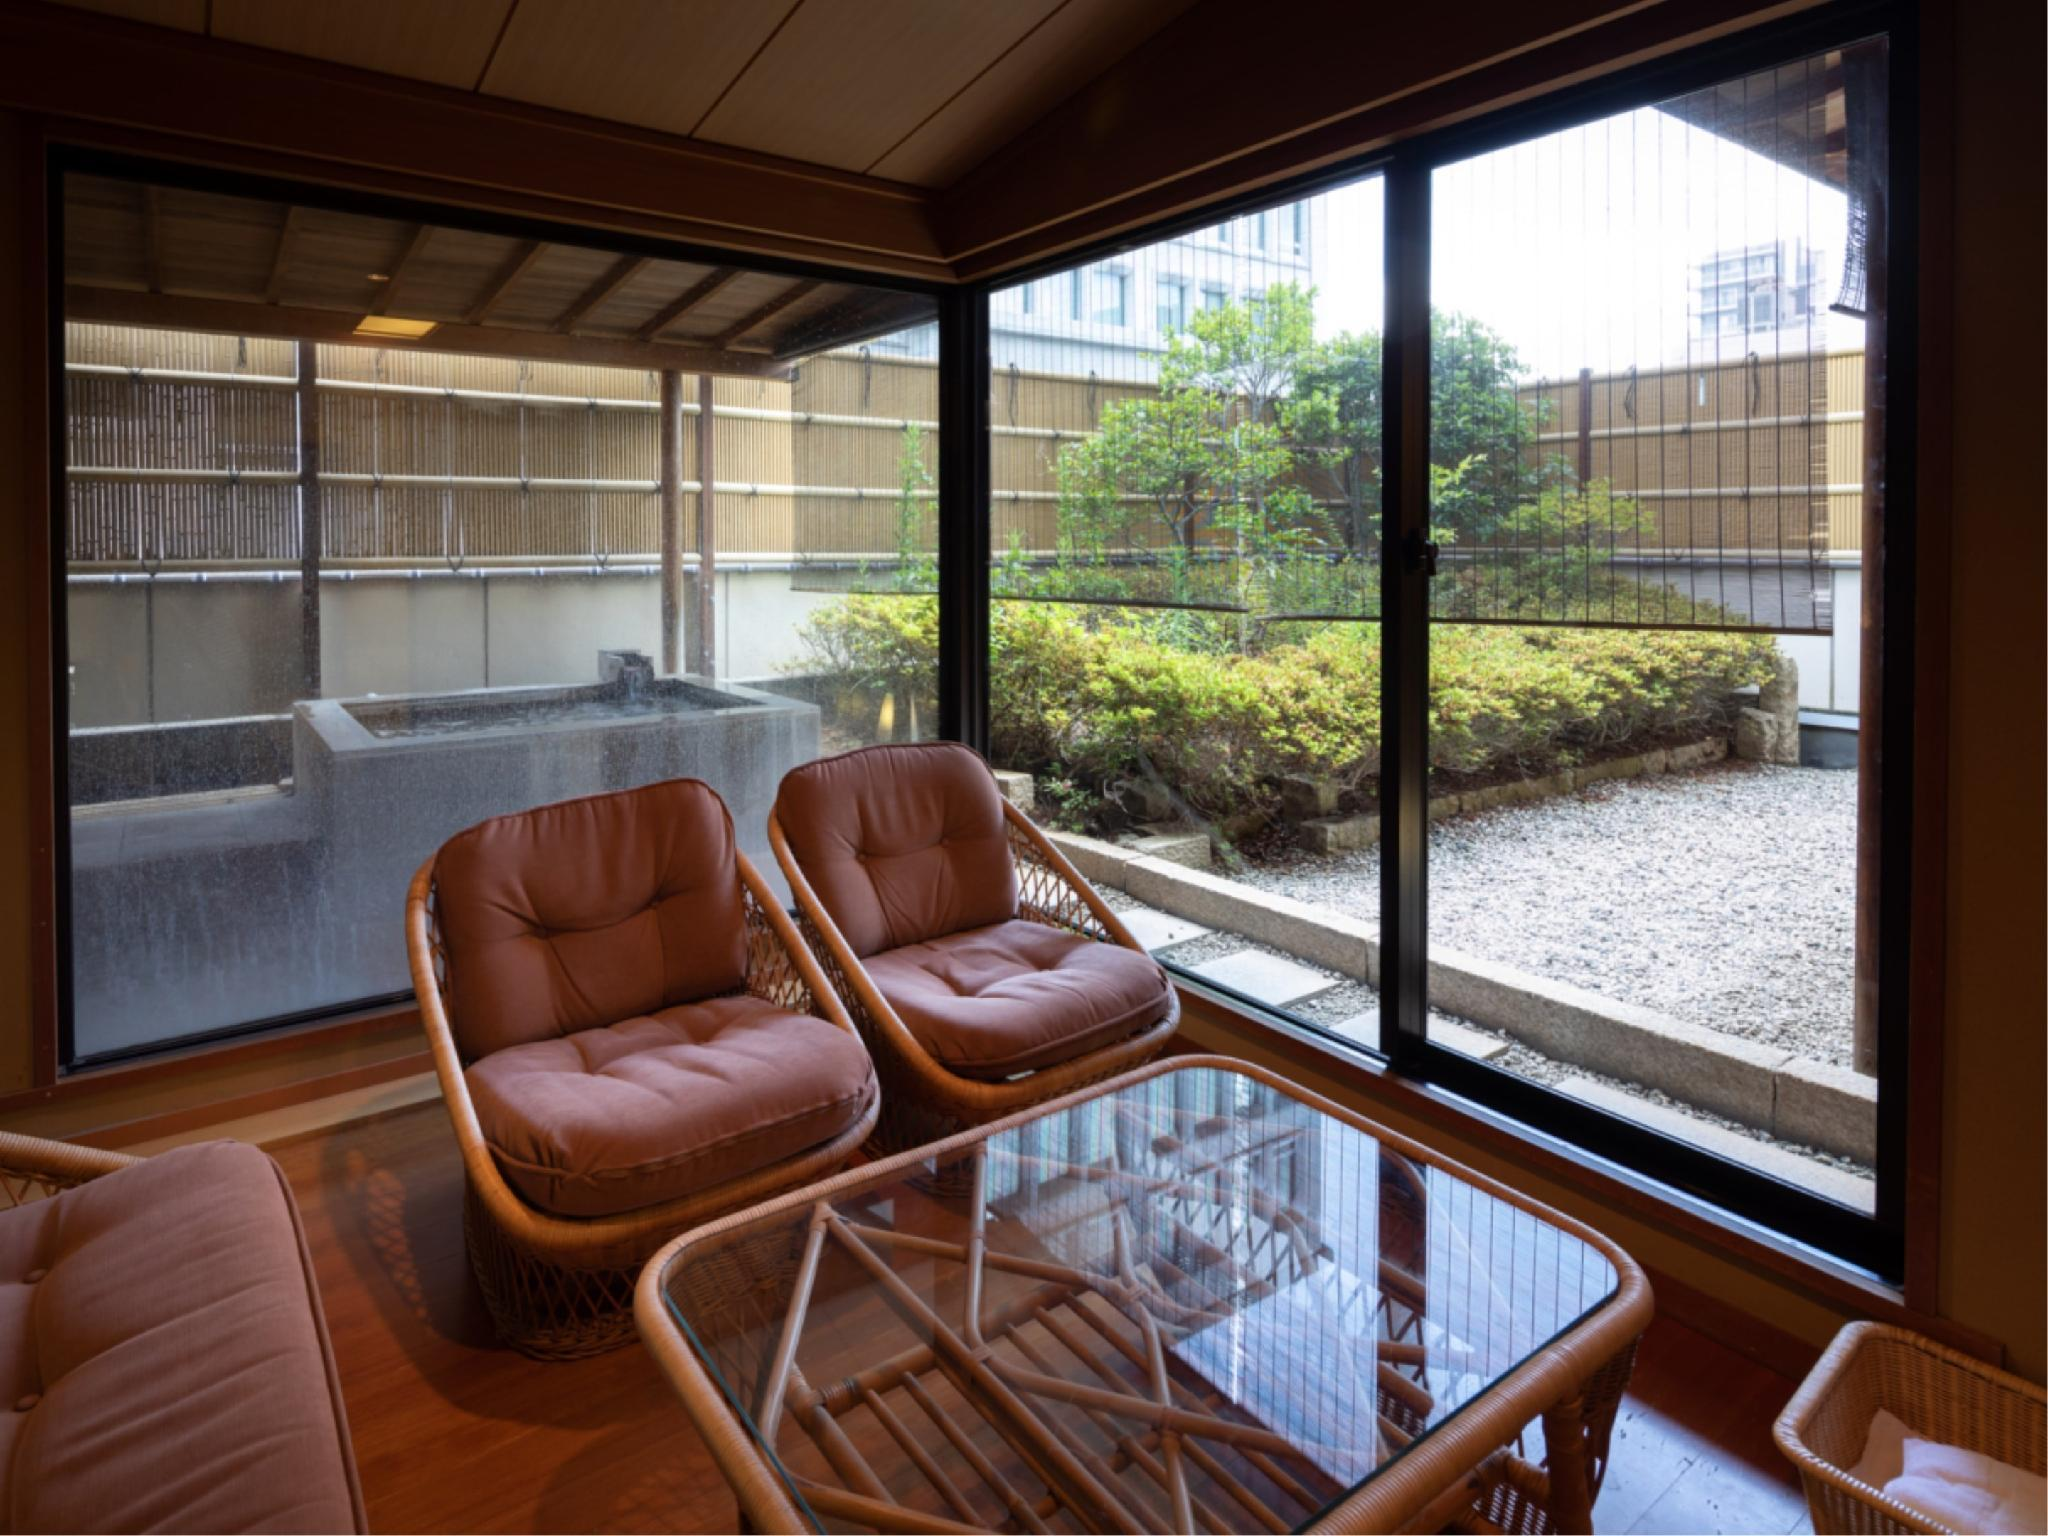 Japanese-style Room with Open-air Bath, Reception Room, and Garden